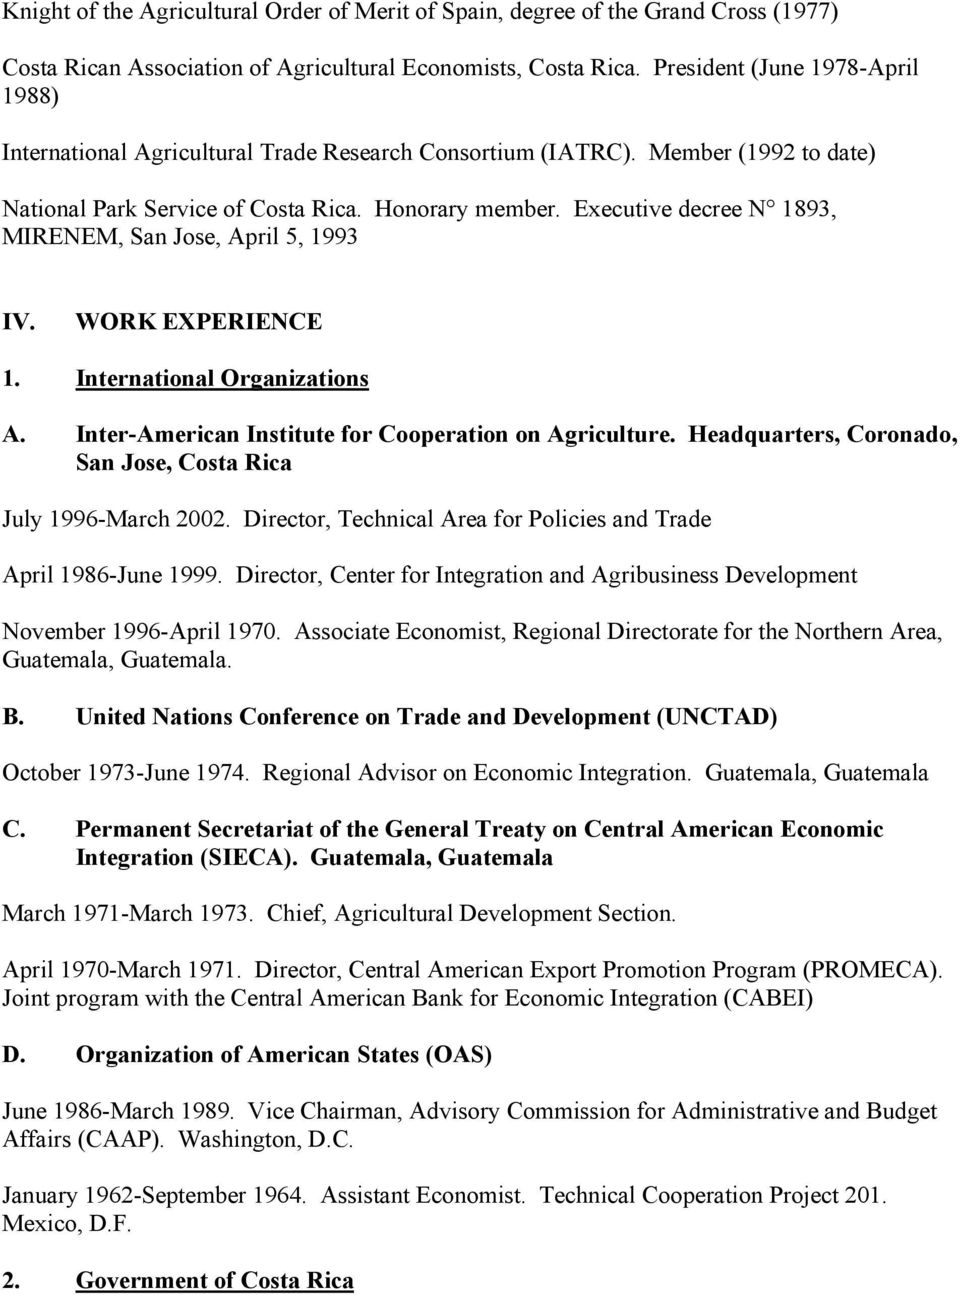 Executive decree N 1893, MIRENEM, San Jose, April 5, 1993 IV. WORK EXPERIENCE 1. International Organizations A. Inter-American Institute for Cooperation on Agriculture.